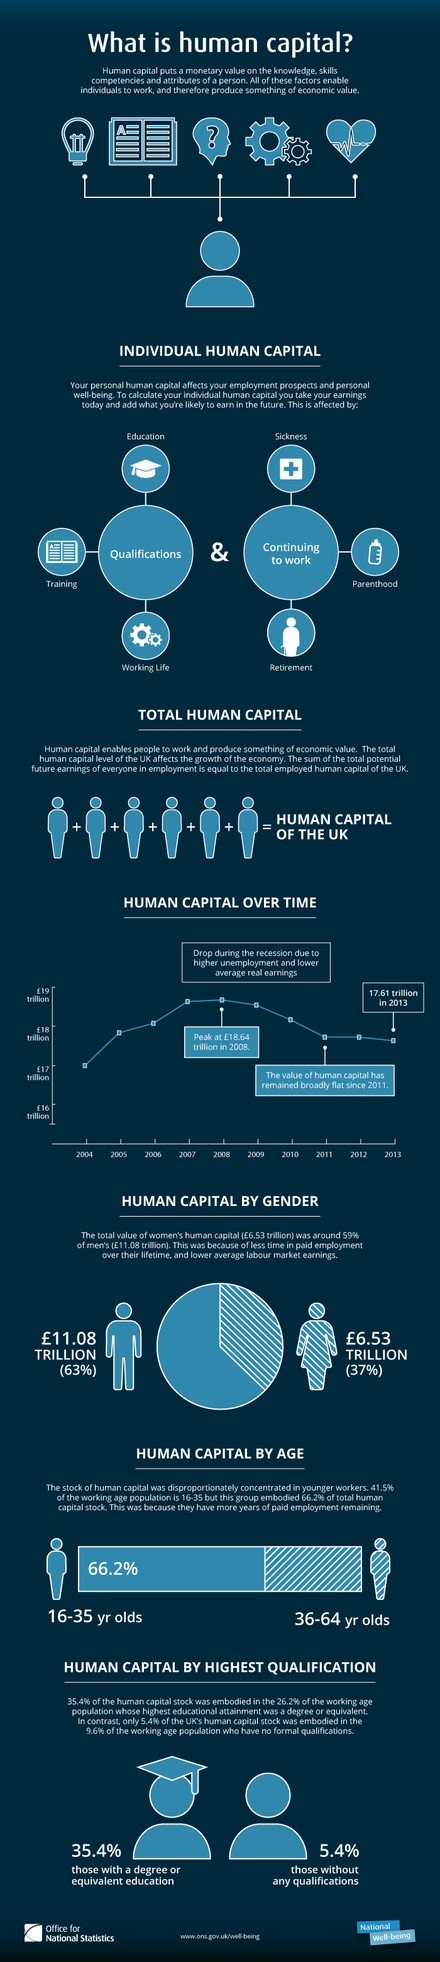 Human capital infographic Human capital.png